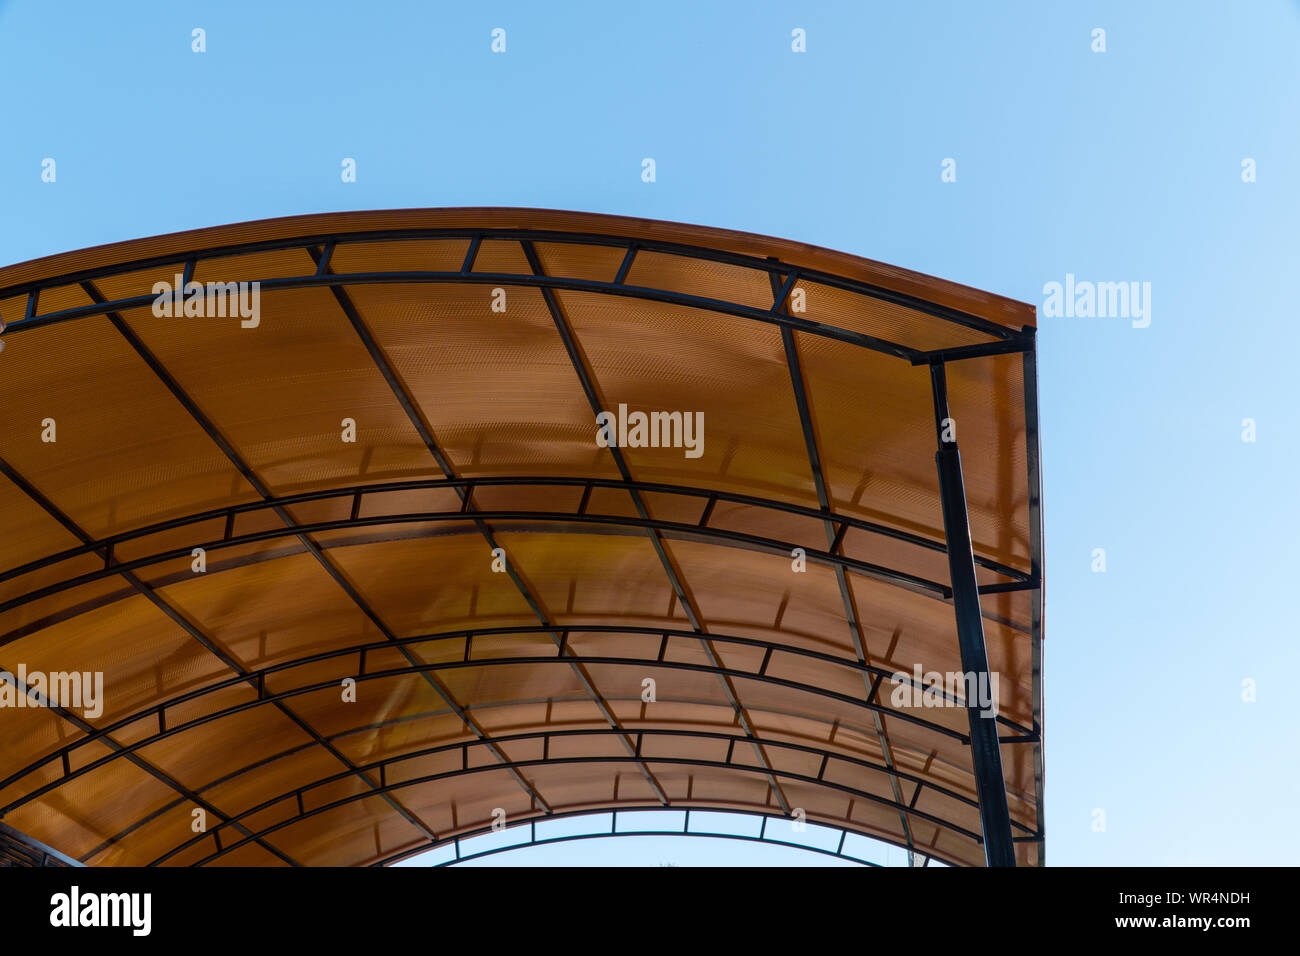 Polycarbonate Sheet High Resolution Stock Photography And Images Alamy